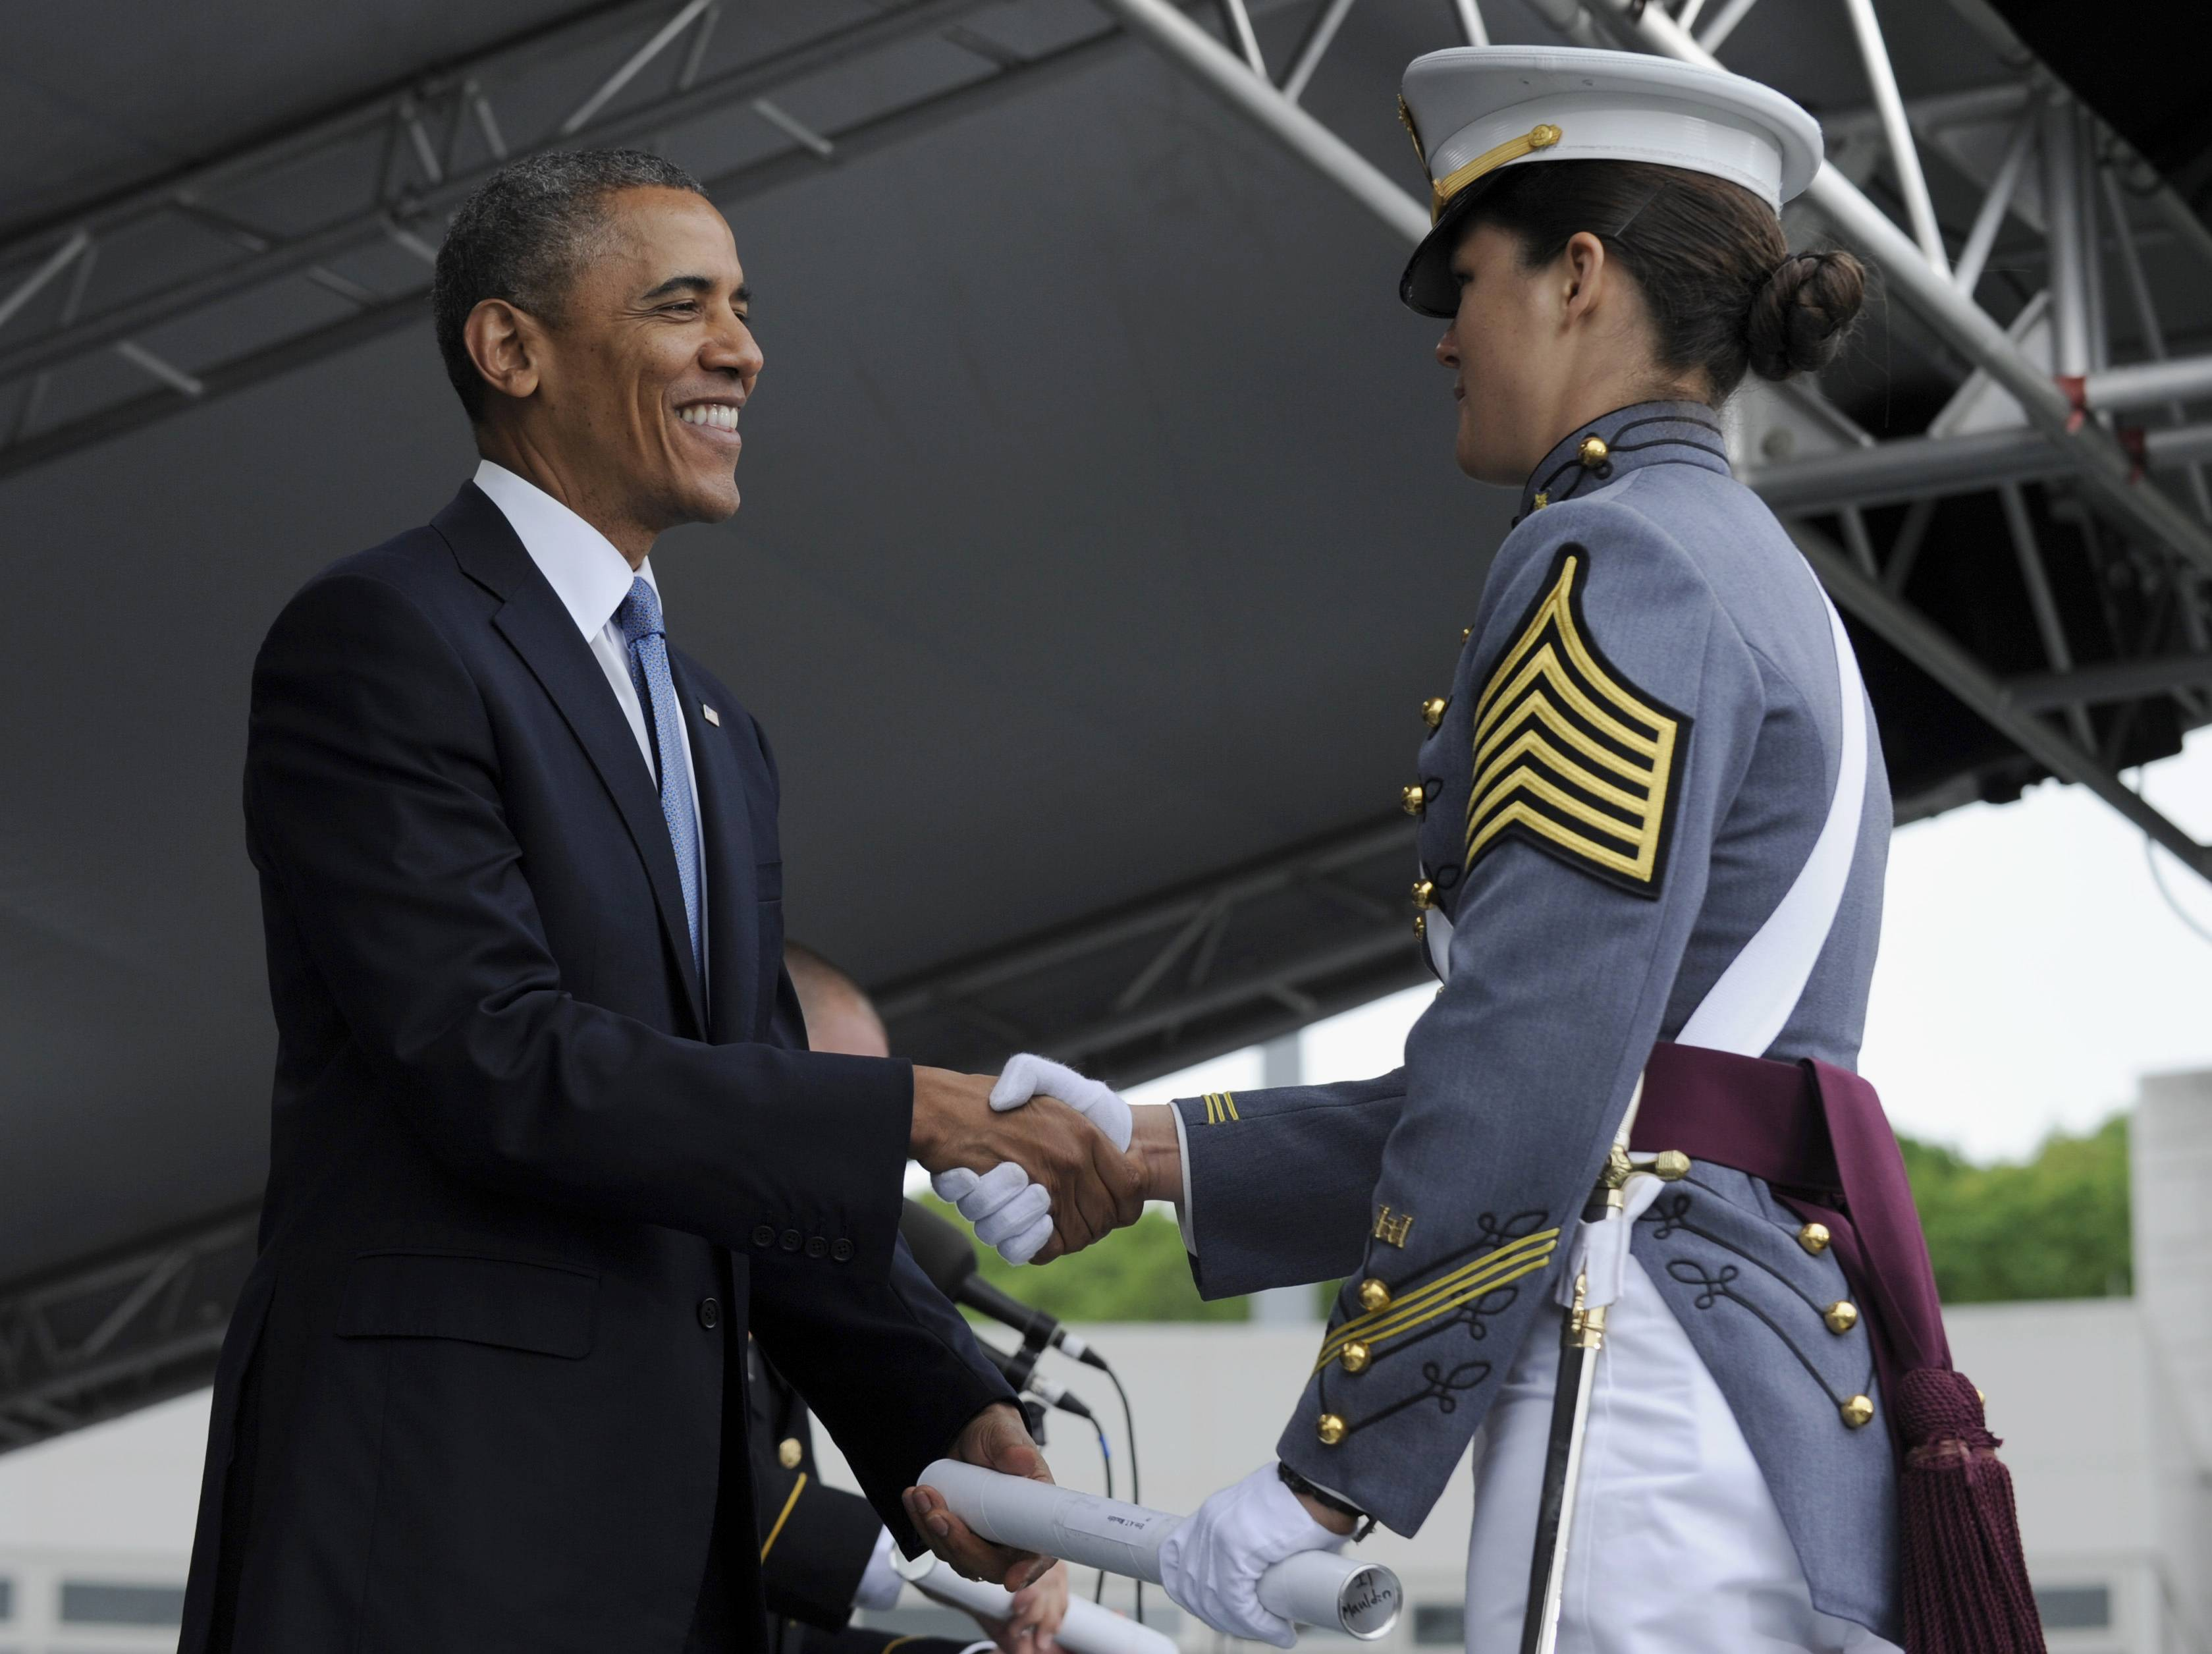 President Barack Obama hands out diploma to class valedictorian Erin Maudlin from Albuquerque, N.M., during the commencement ceremony for the U.S. Military Academy at West Point's Class of 2014, in West Point, N.Y., Wednesday, May 28, 2014.